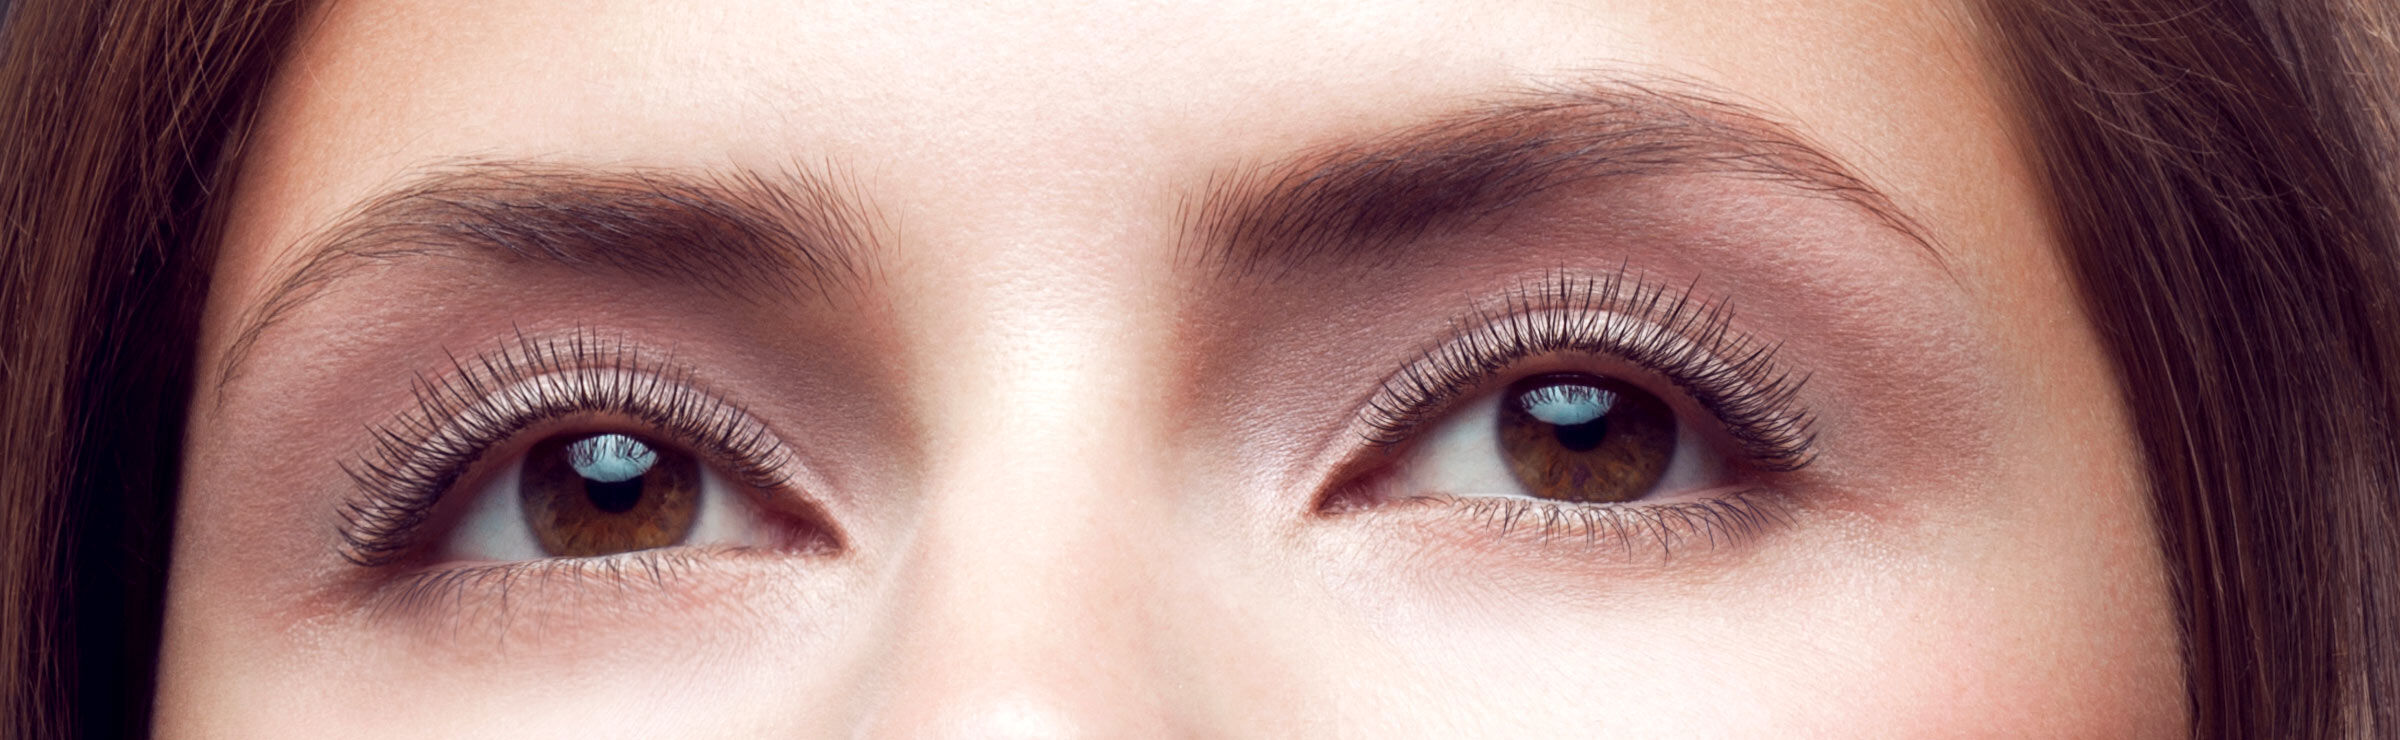 5 Reasons LVL Lashes Will Change Your Life